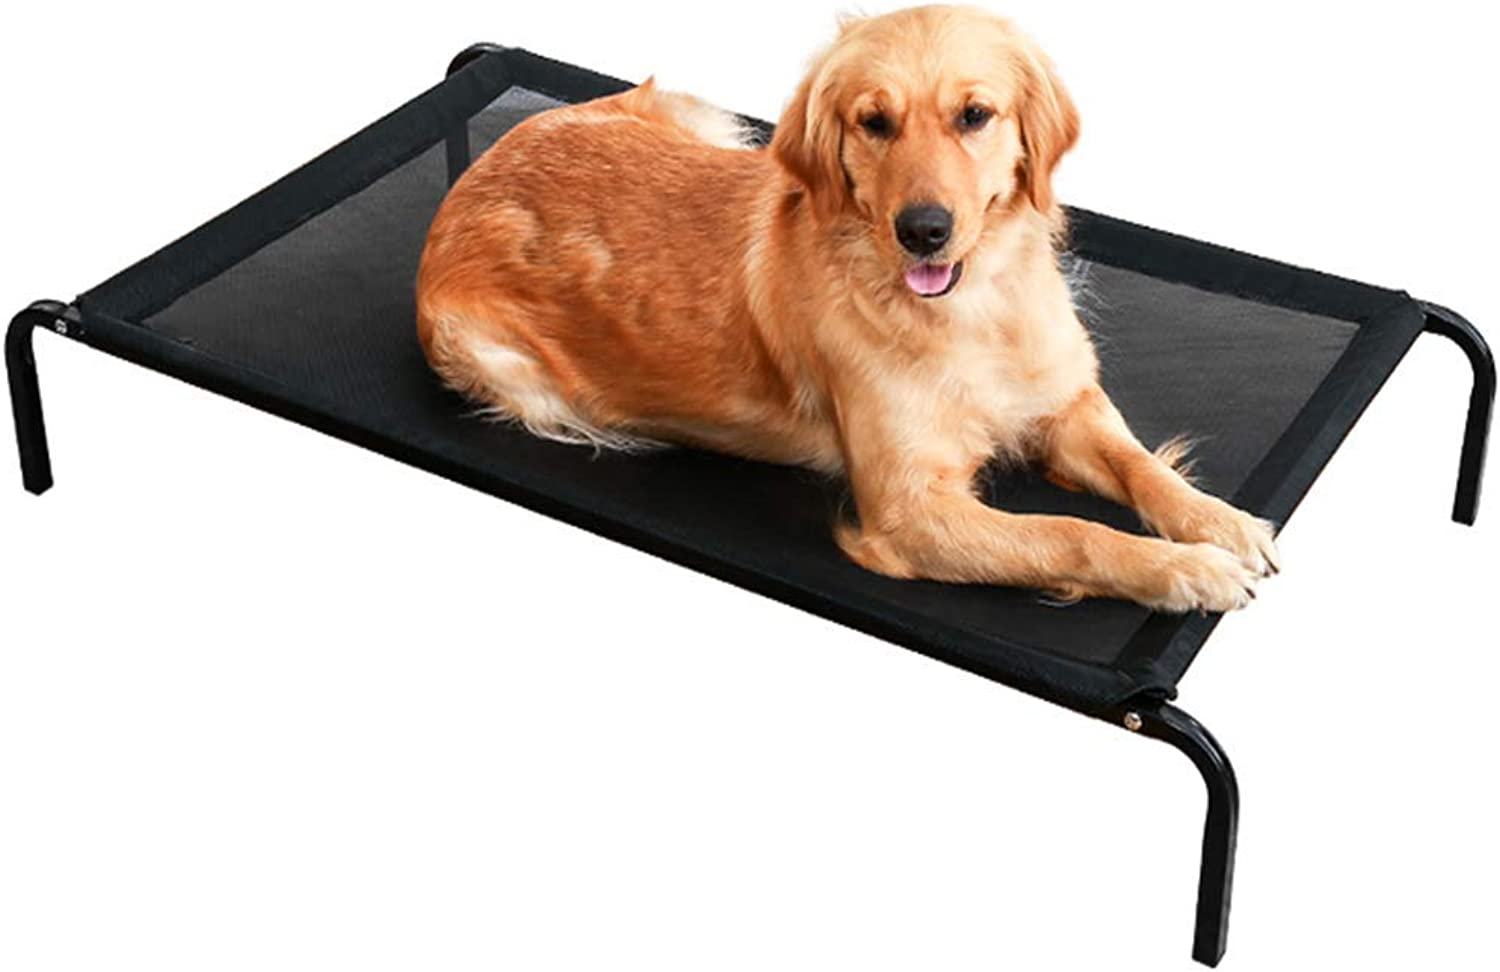 Desti Flakes Pet Bed Jin Mao Teddy Dog Mat Small Medium Large Dog Bed Four Seasons Universal Pet Pad Quick Dry Load Bearing Strong (Size   S)